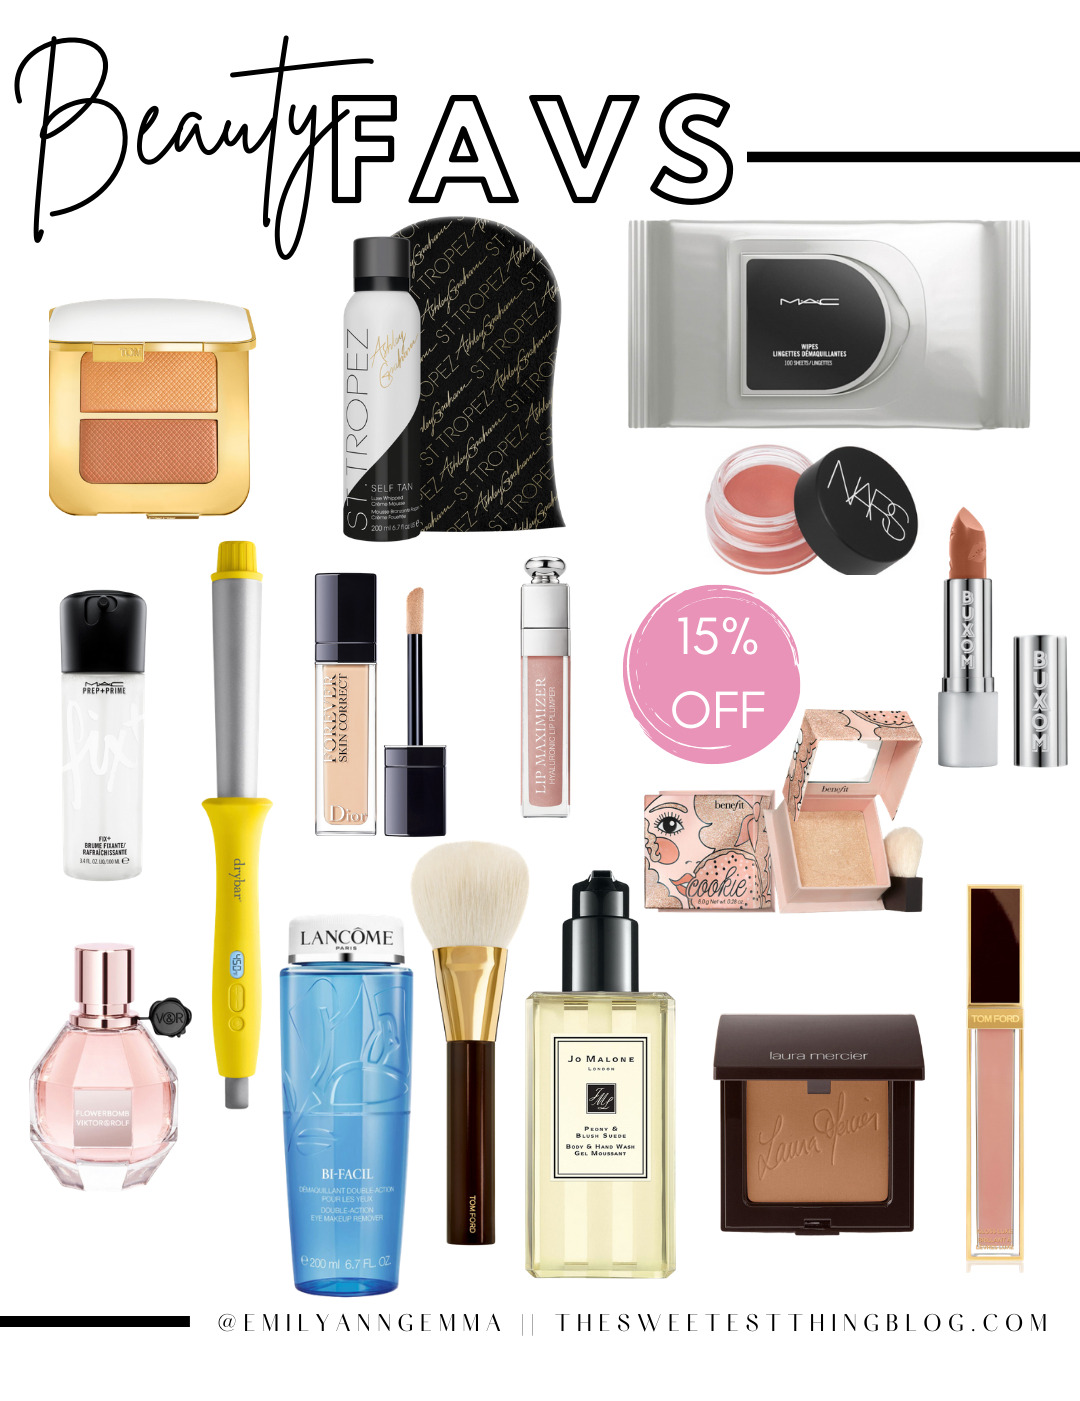 Emily ann gemma beauty and makeup favorites on sale at Nordstrom